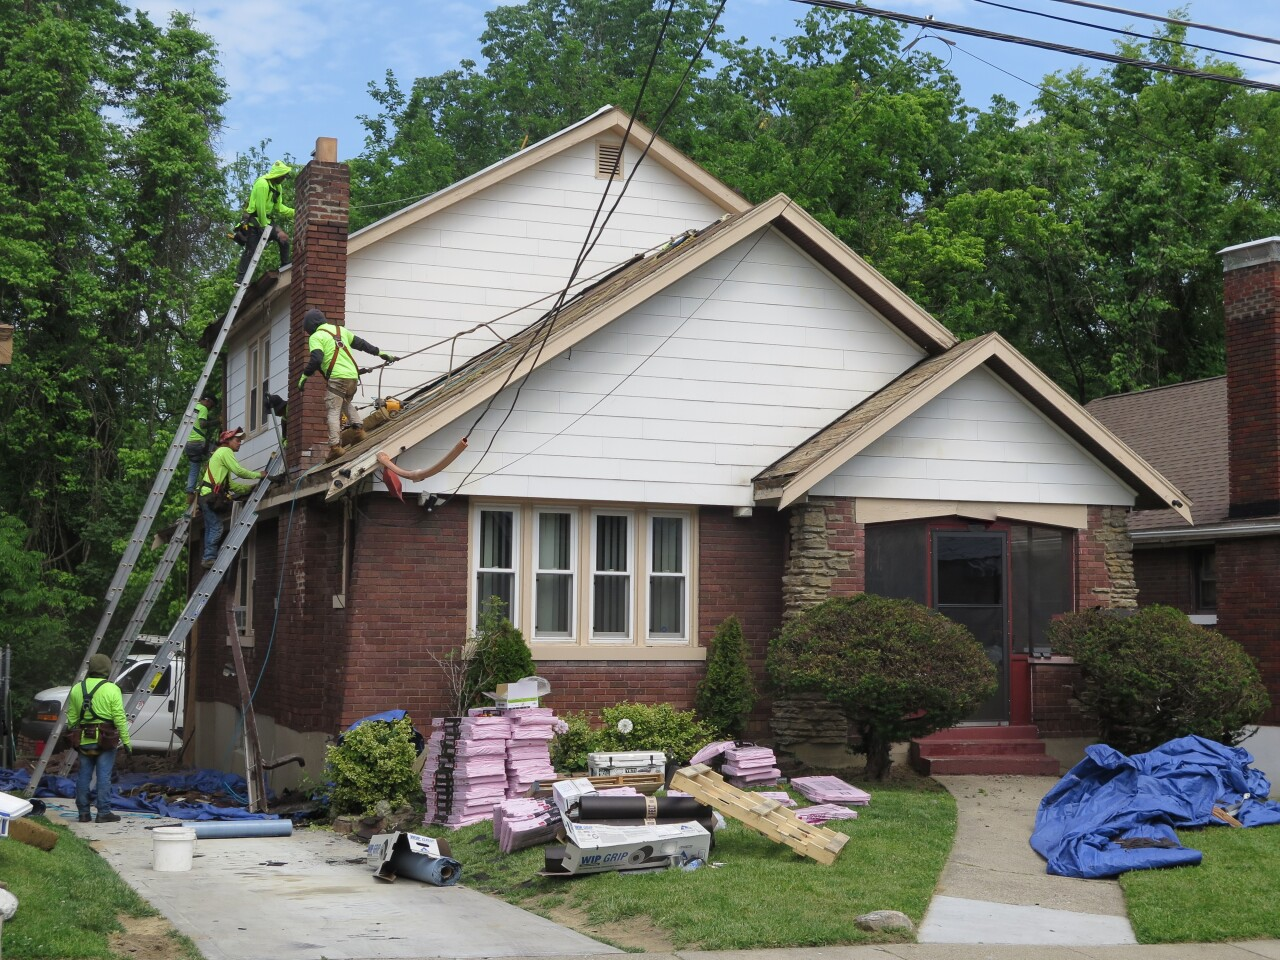 A crew from Deer Park Roofing works to install a new roof on Naima Jackson's home on May 24, 2021. Ladders are extended so crews can reach two levels of roofing, and materials are stacked in Jackson's front yard.